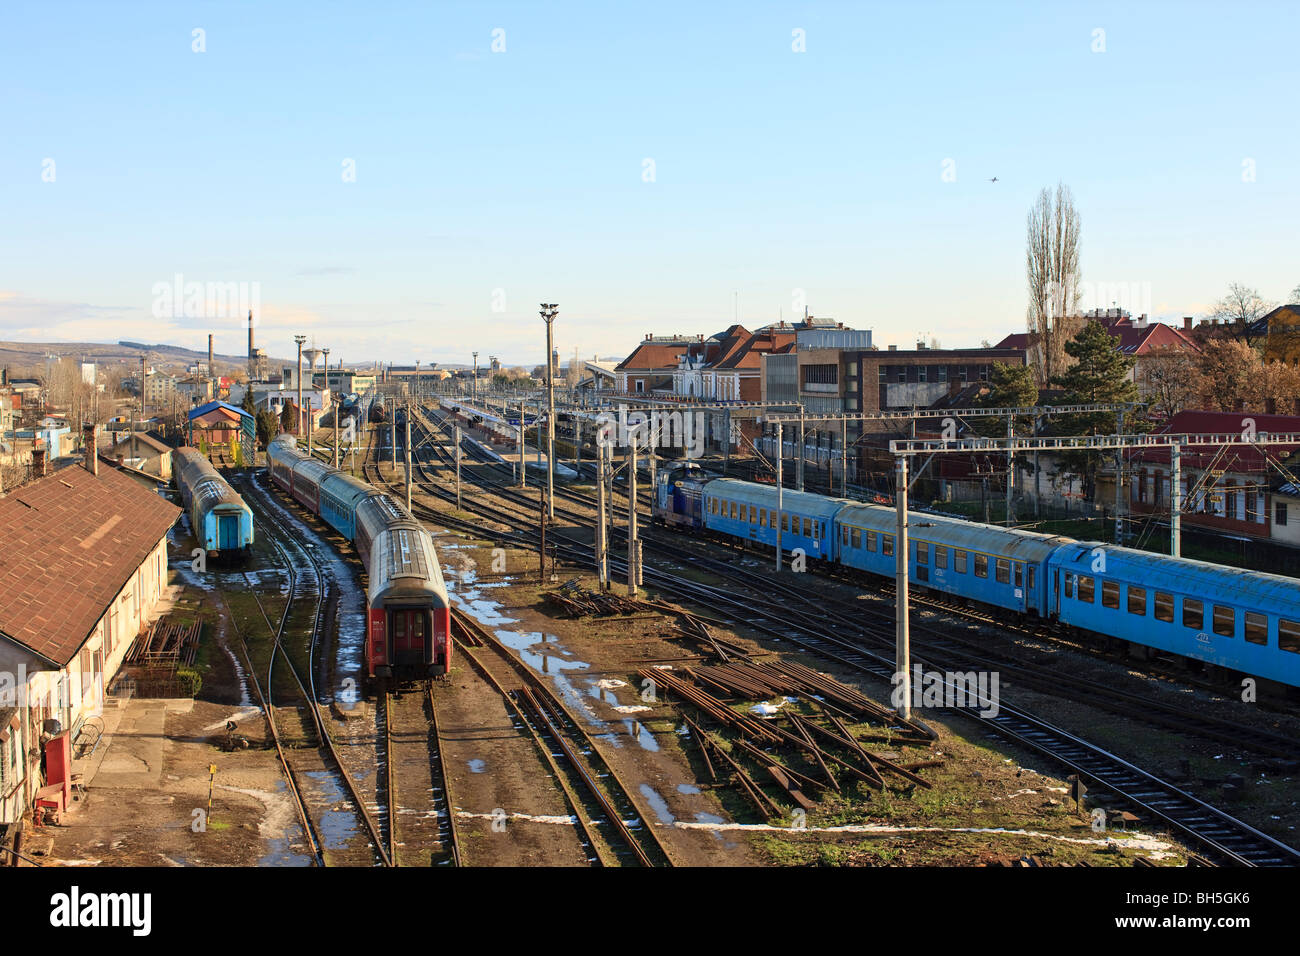 Trains in the main station of Cluj-Napoca Romania - Stock Image